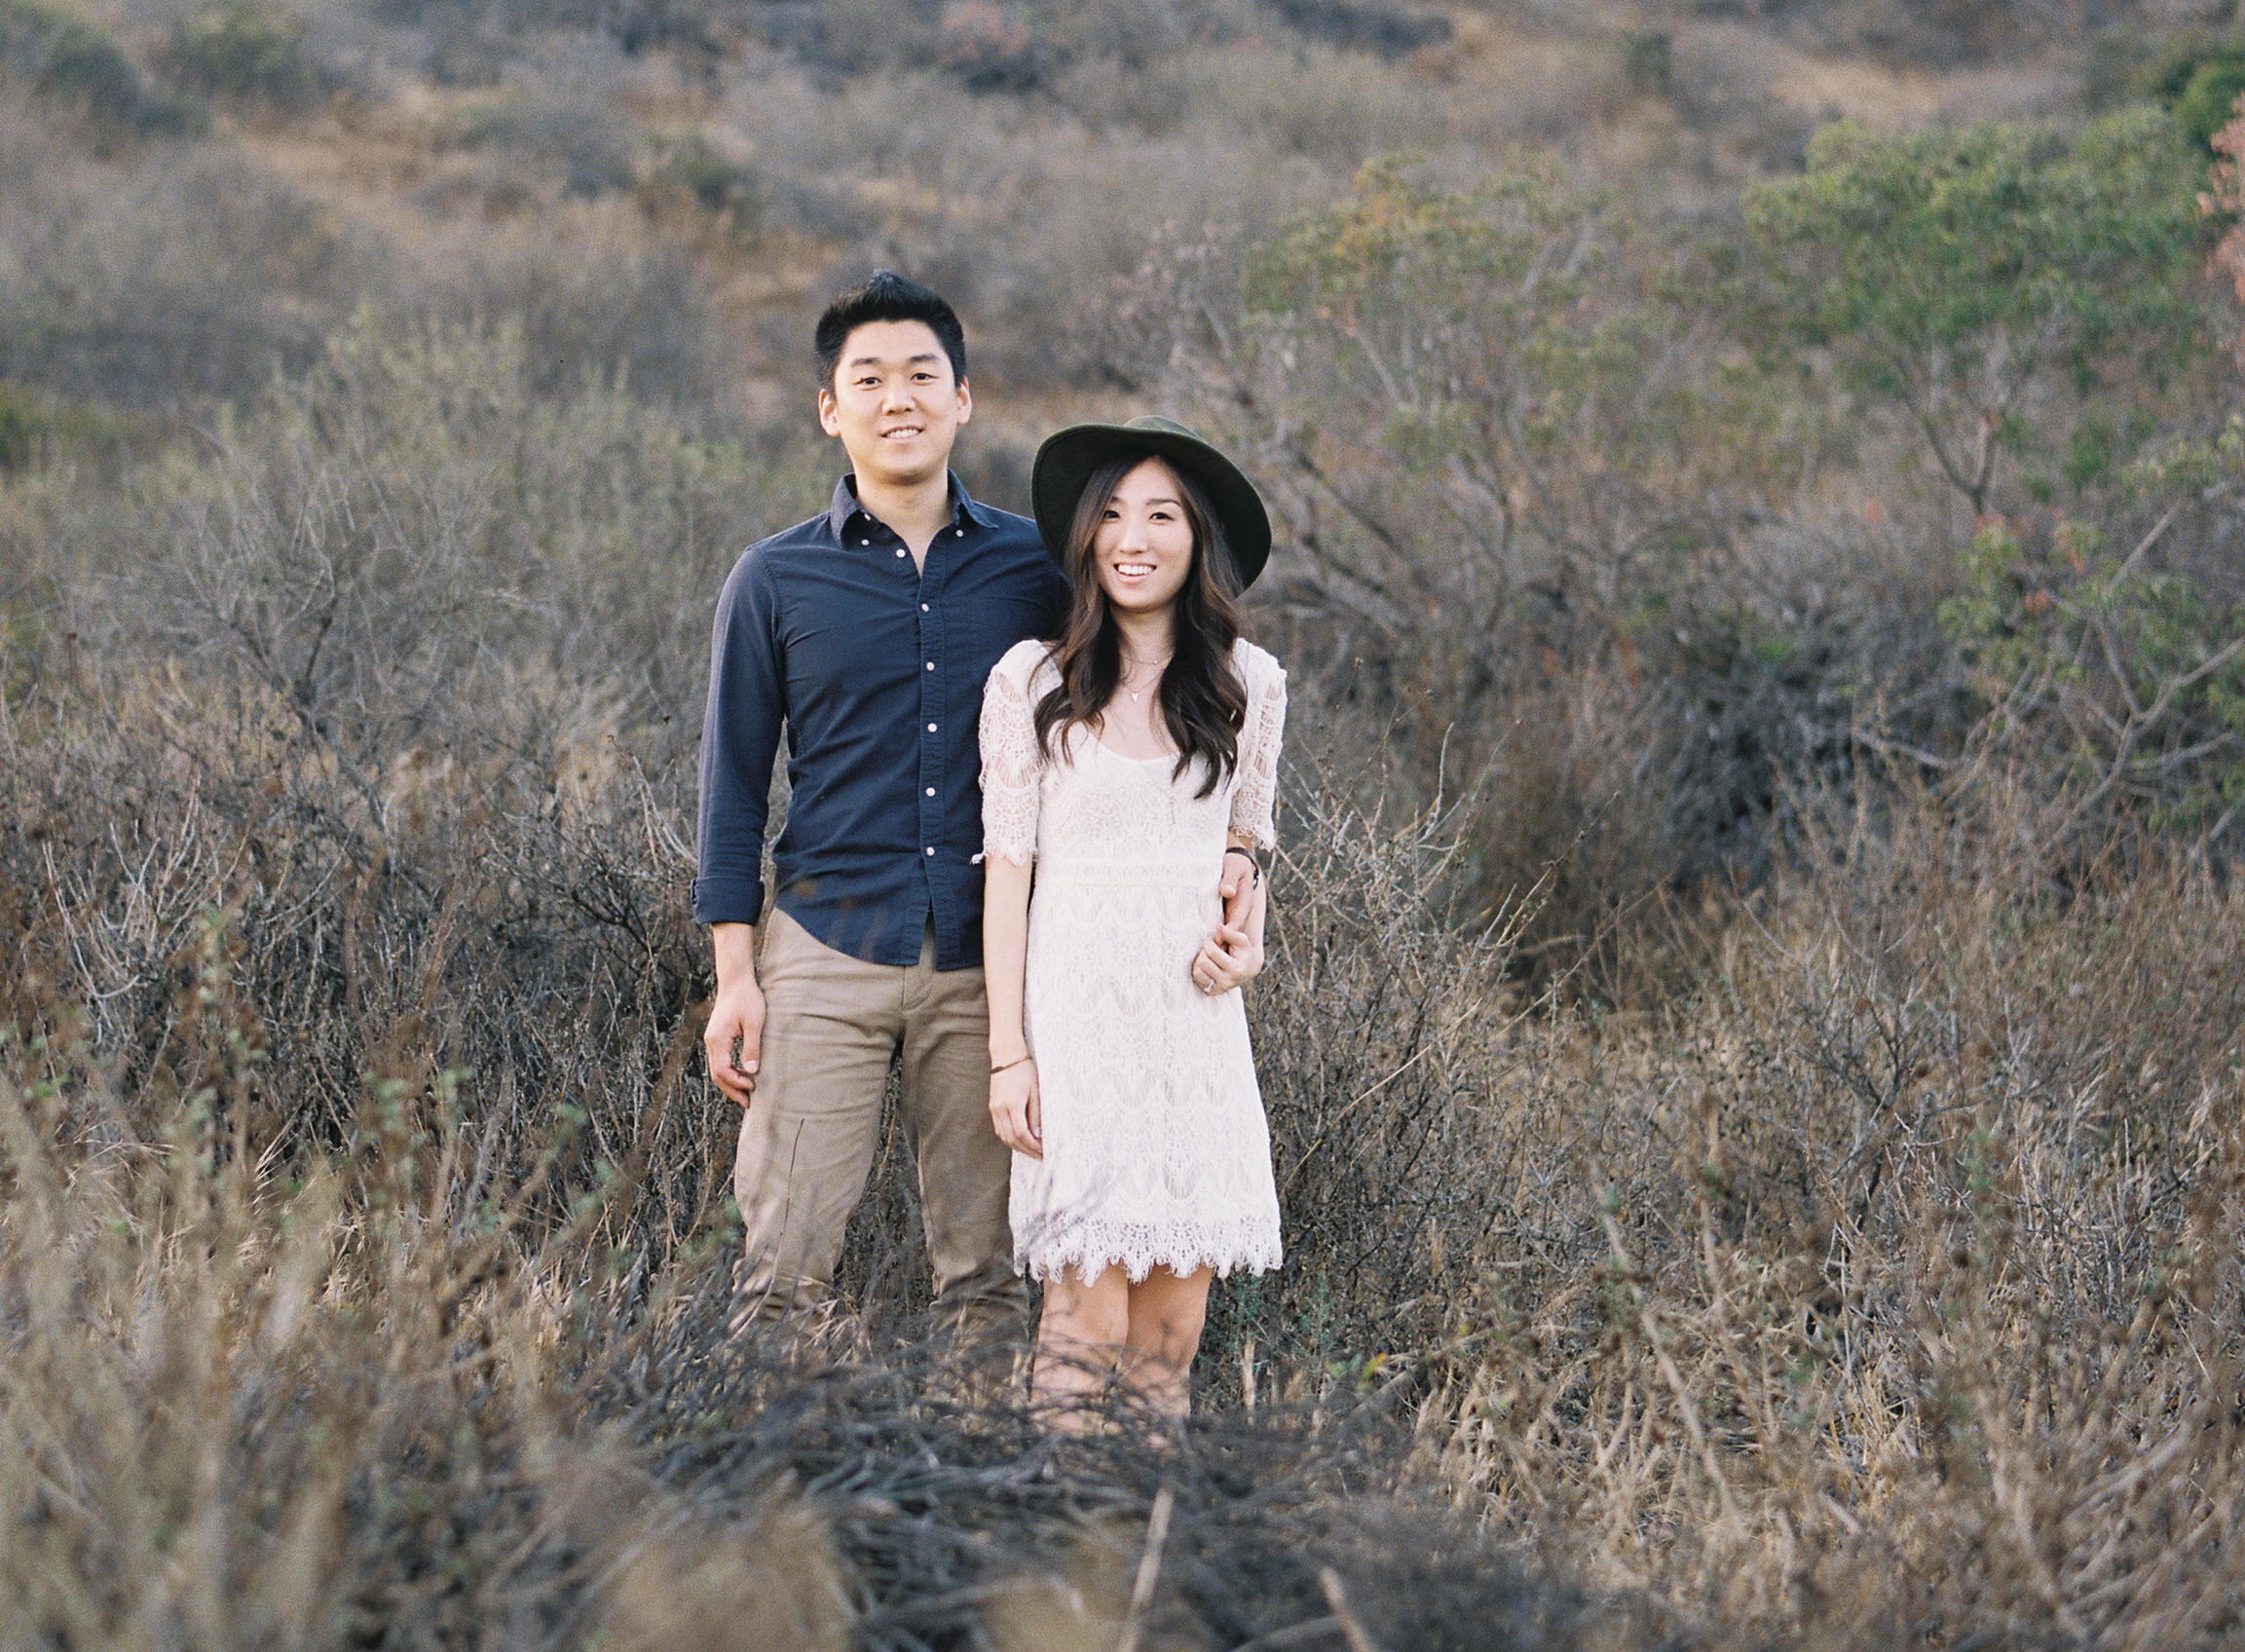 Jennifer Wong and Michael Thomas